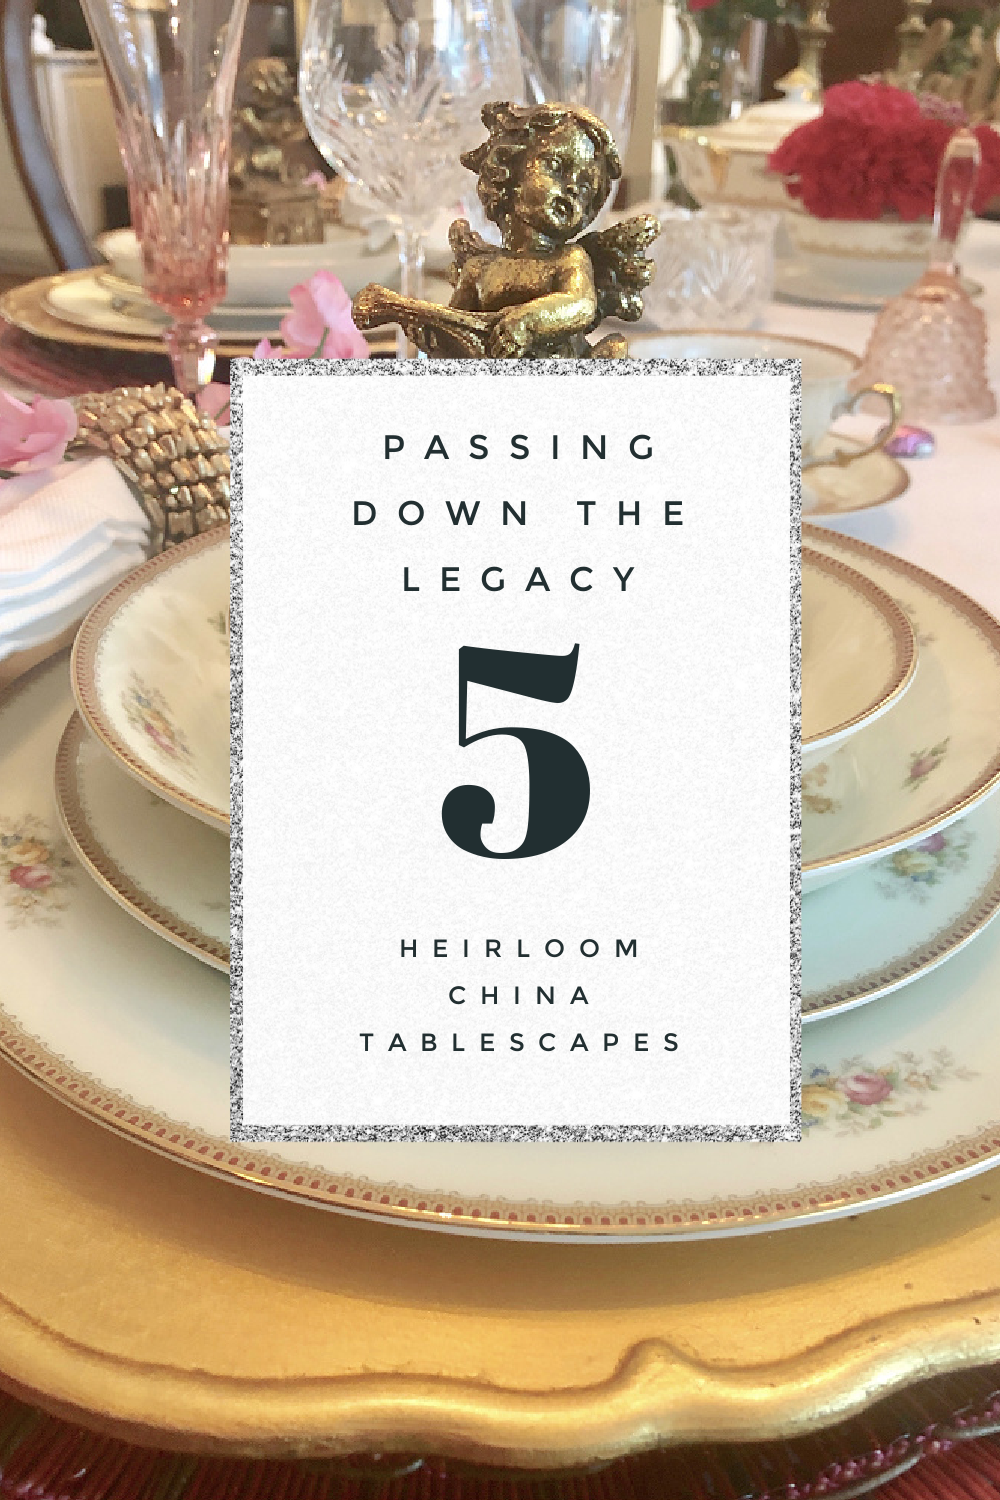 5 TABLESCAPES USING HEIRLOOM CHINA